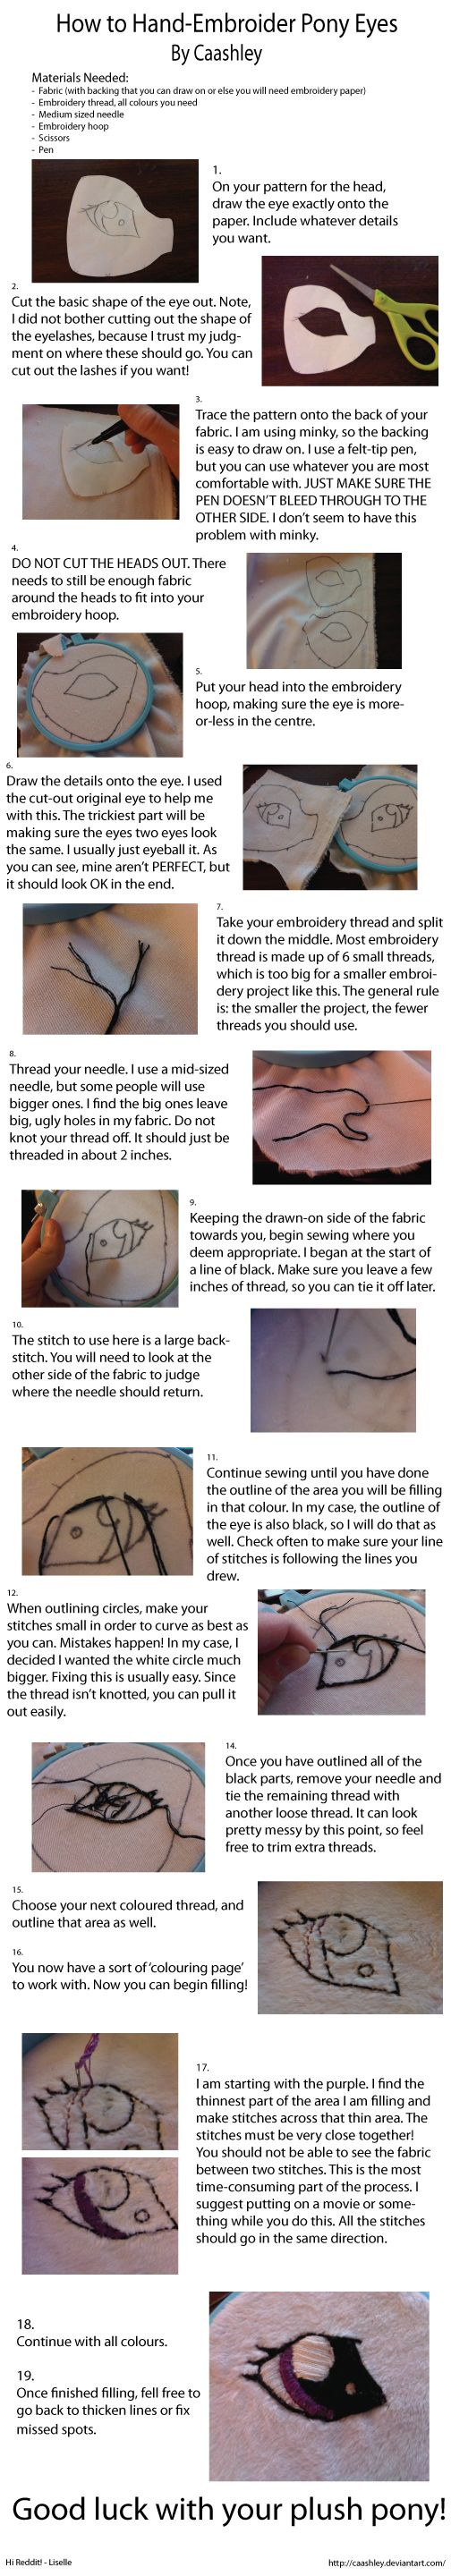 Embroidered Eyes: Tutorial How To Embroider My